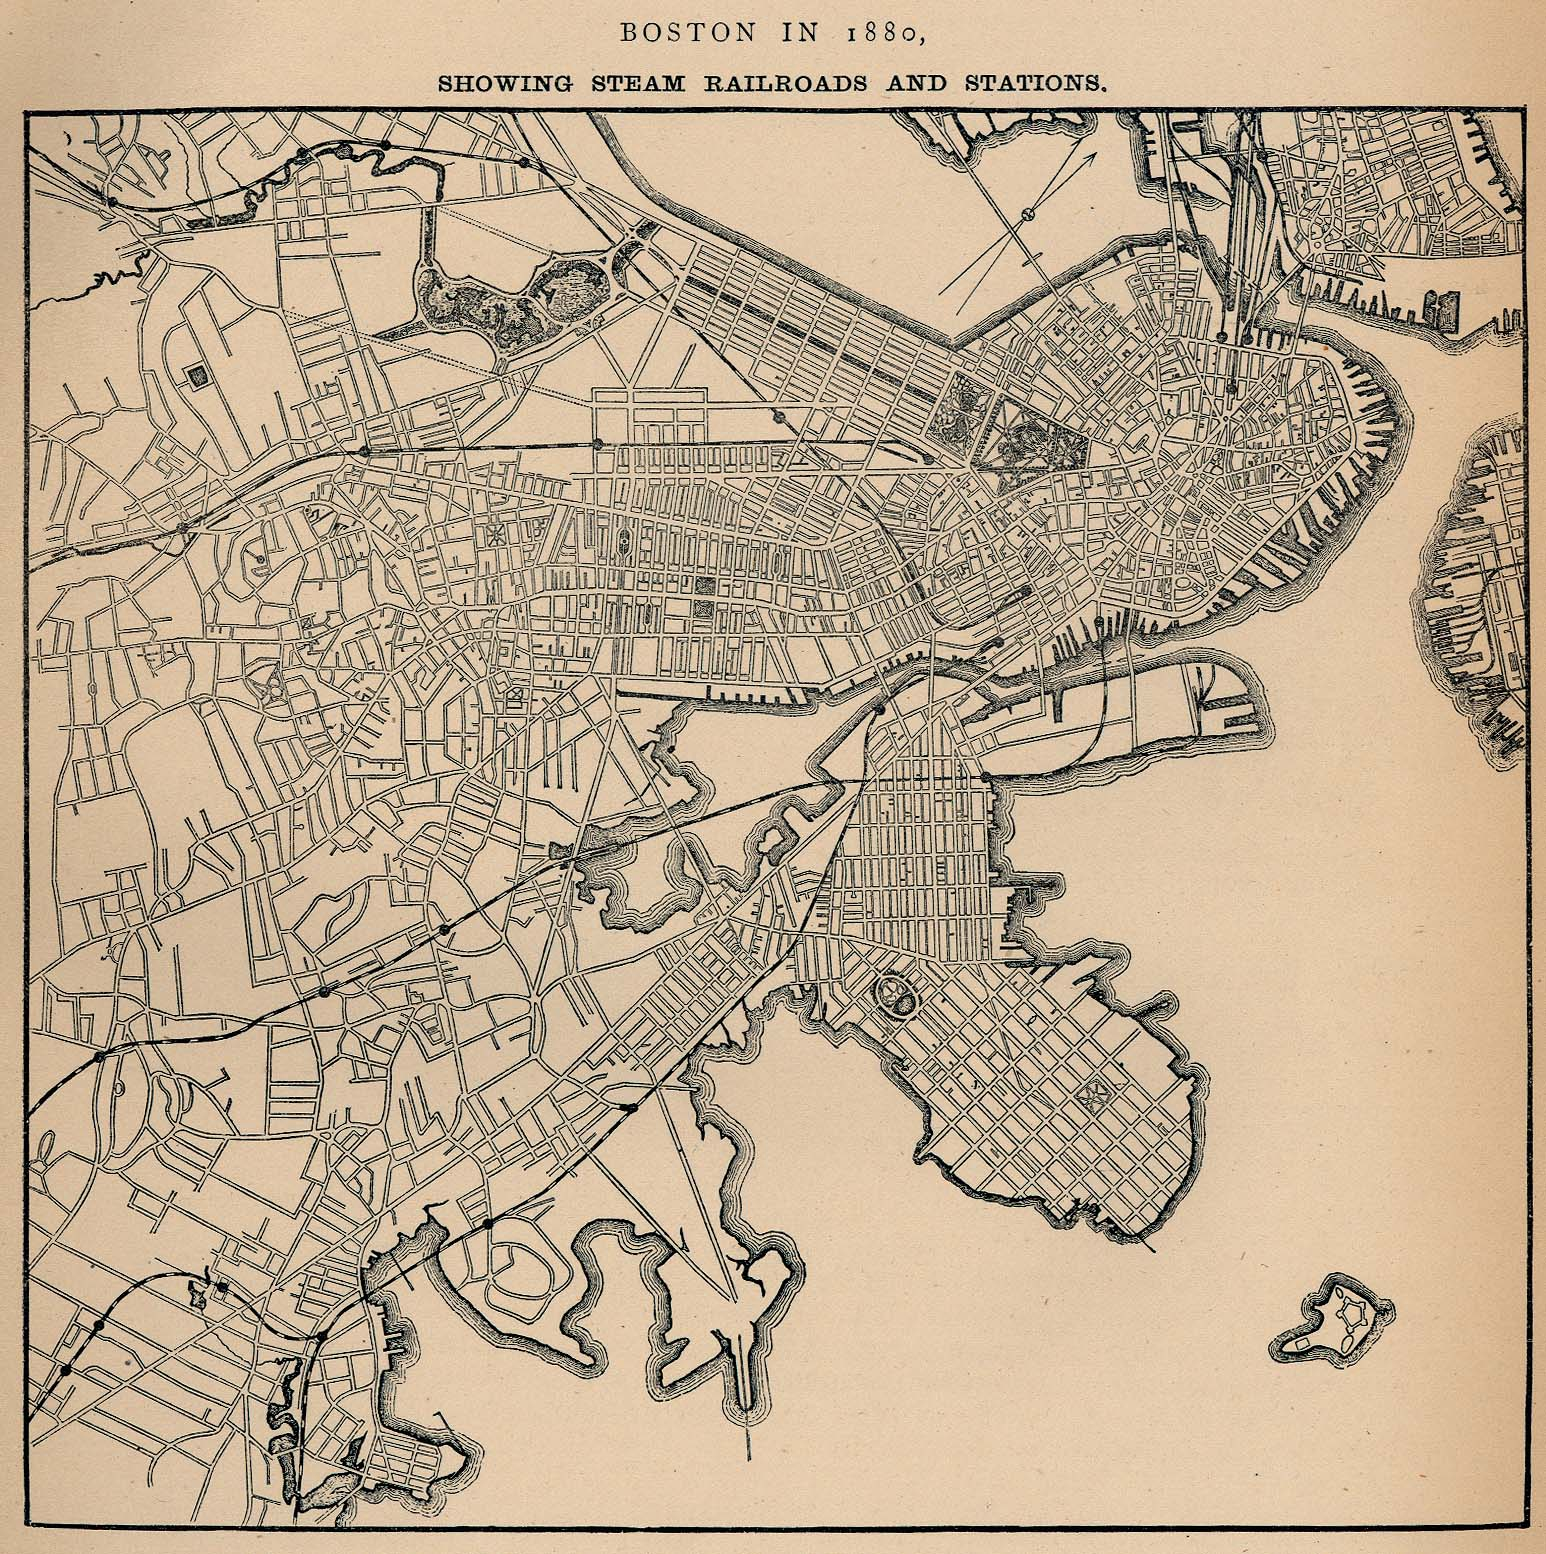 Boston City Map, Massachusetts, United States 1880